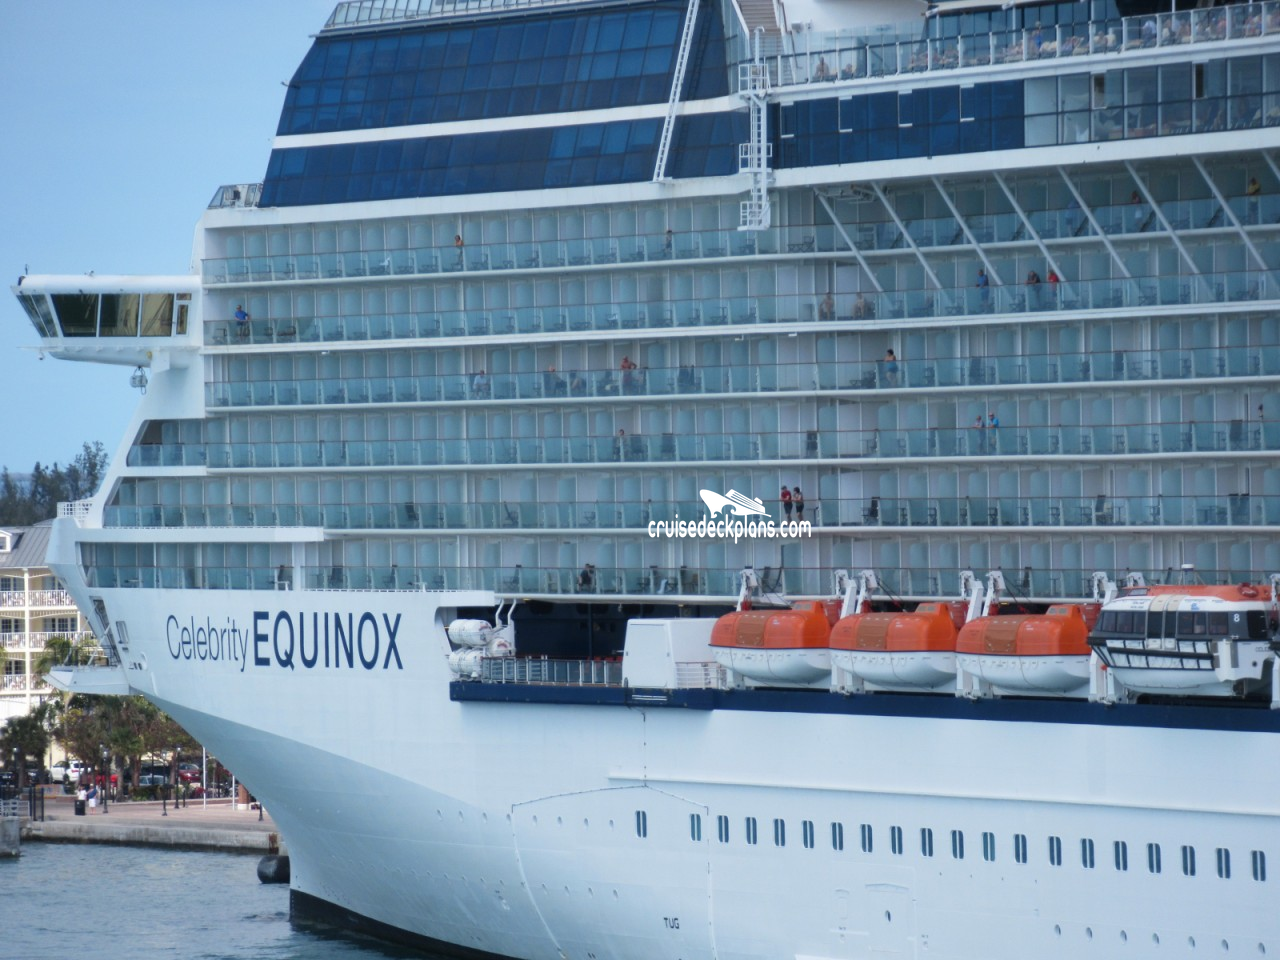 Celebrity Equinox Stateroom Pictures and Descriptions on ...